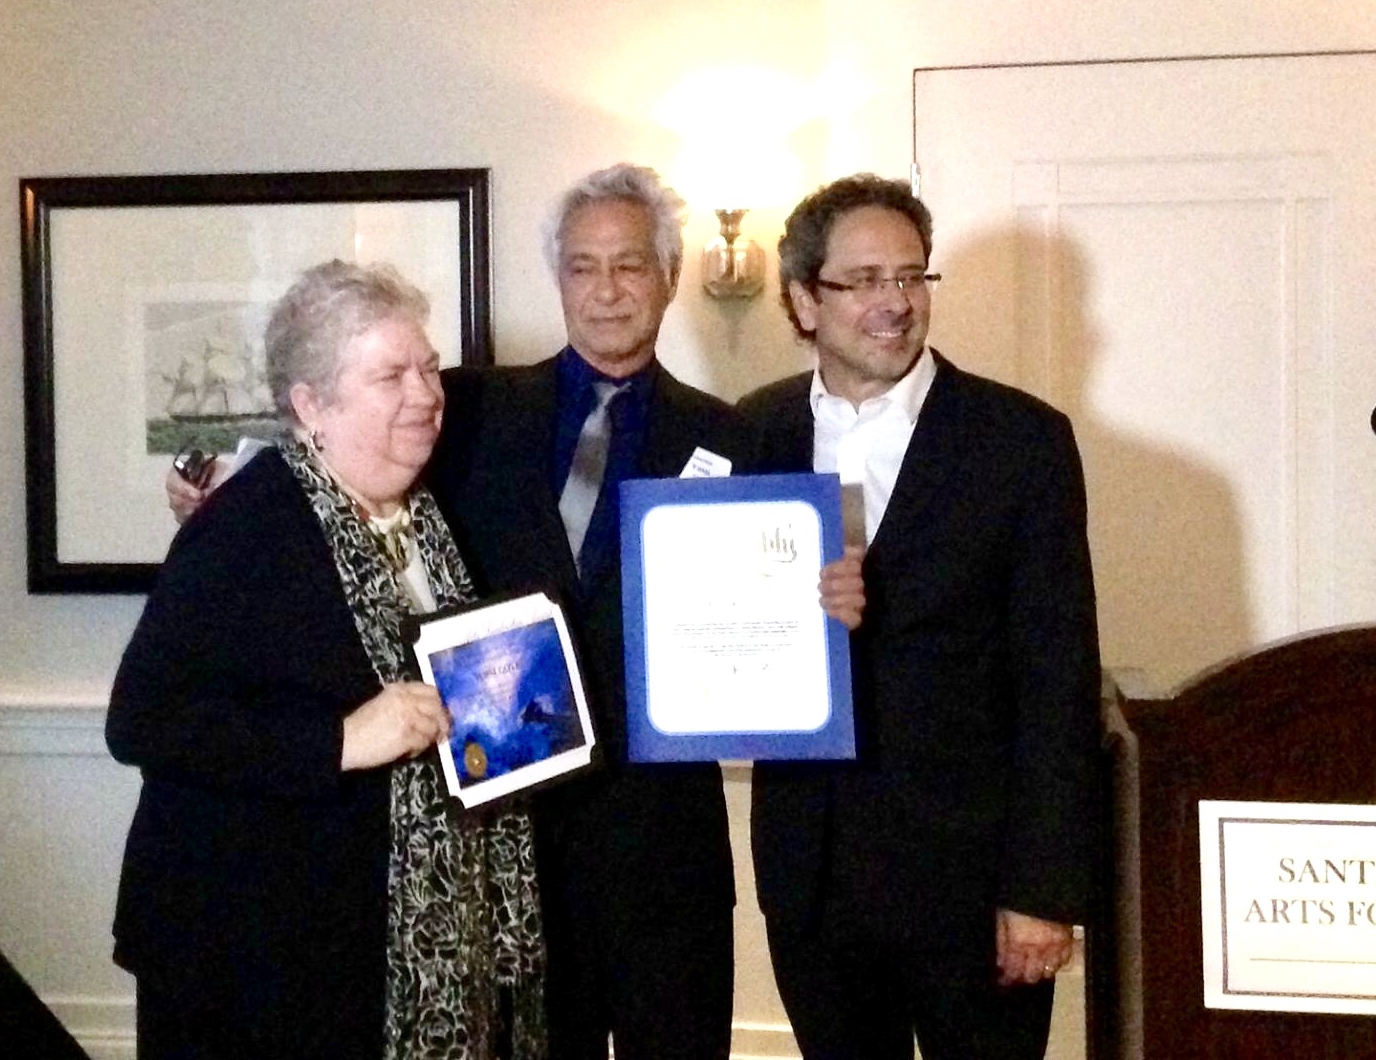 Yossi Govrin being awarded the Arts Leadership Award and the award of the California State Assembly by Mayor Pam O'Connor and State Assemblyman Richard Bloom.